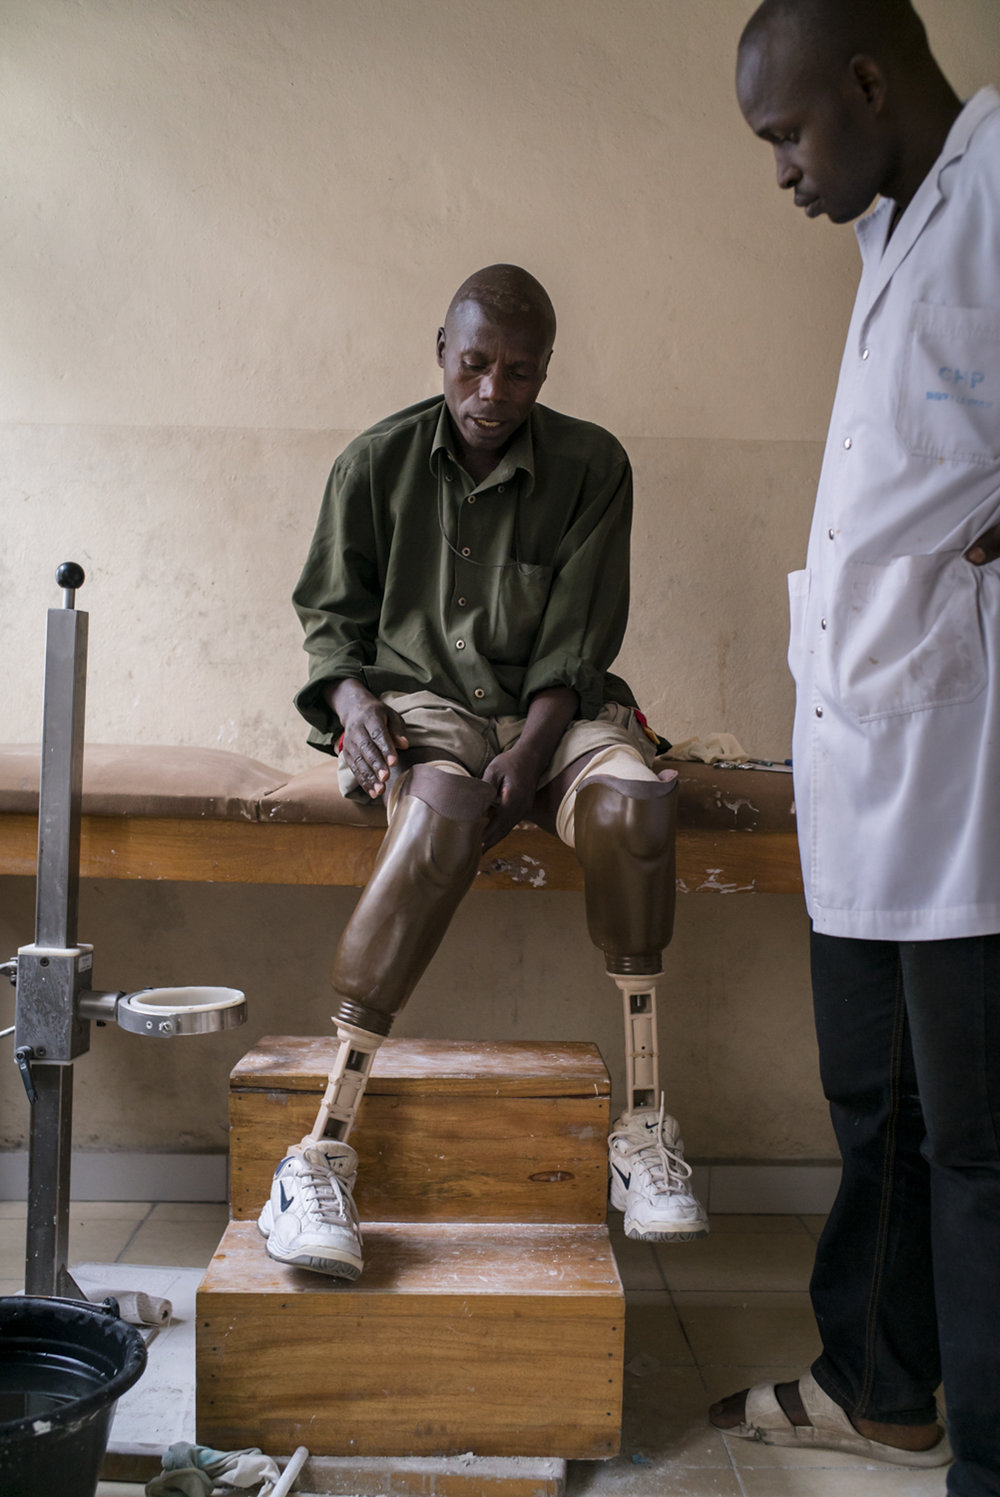 Augustin Semayinga Rukara, 51, a double amputee and father of eight, he puts on his prosthetic limb at a doctor's office. Augustin's village of Mpati, in Masisi territory of North Kivu,was attacked in June 2013 and he lost his right leg after he was hit by a bullet. In October of that year he received his first prosthesis from the ICRC. In March 2016, his village was attacked again, and this time fighters shot Augustin in the left leg as he fled for his life. In July 2017, Augustin's second leg had to be amputated. With a second prothetic leg from the ICRC, he was able to walk again. Centre pour Handicapes Physiques Shrika La Umoja, Goma, North Kivu, Democratic Republic of Congo. August 30, 2017.